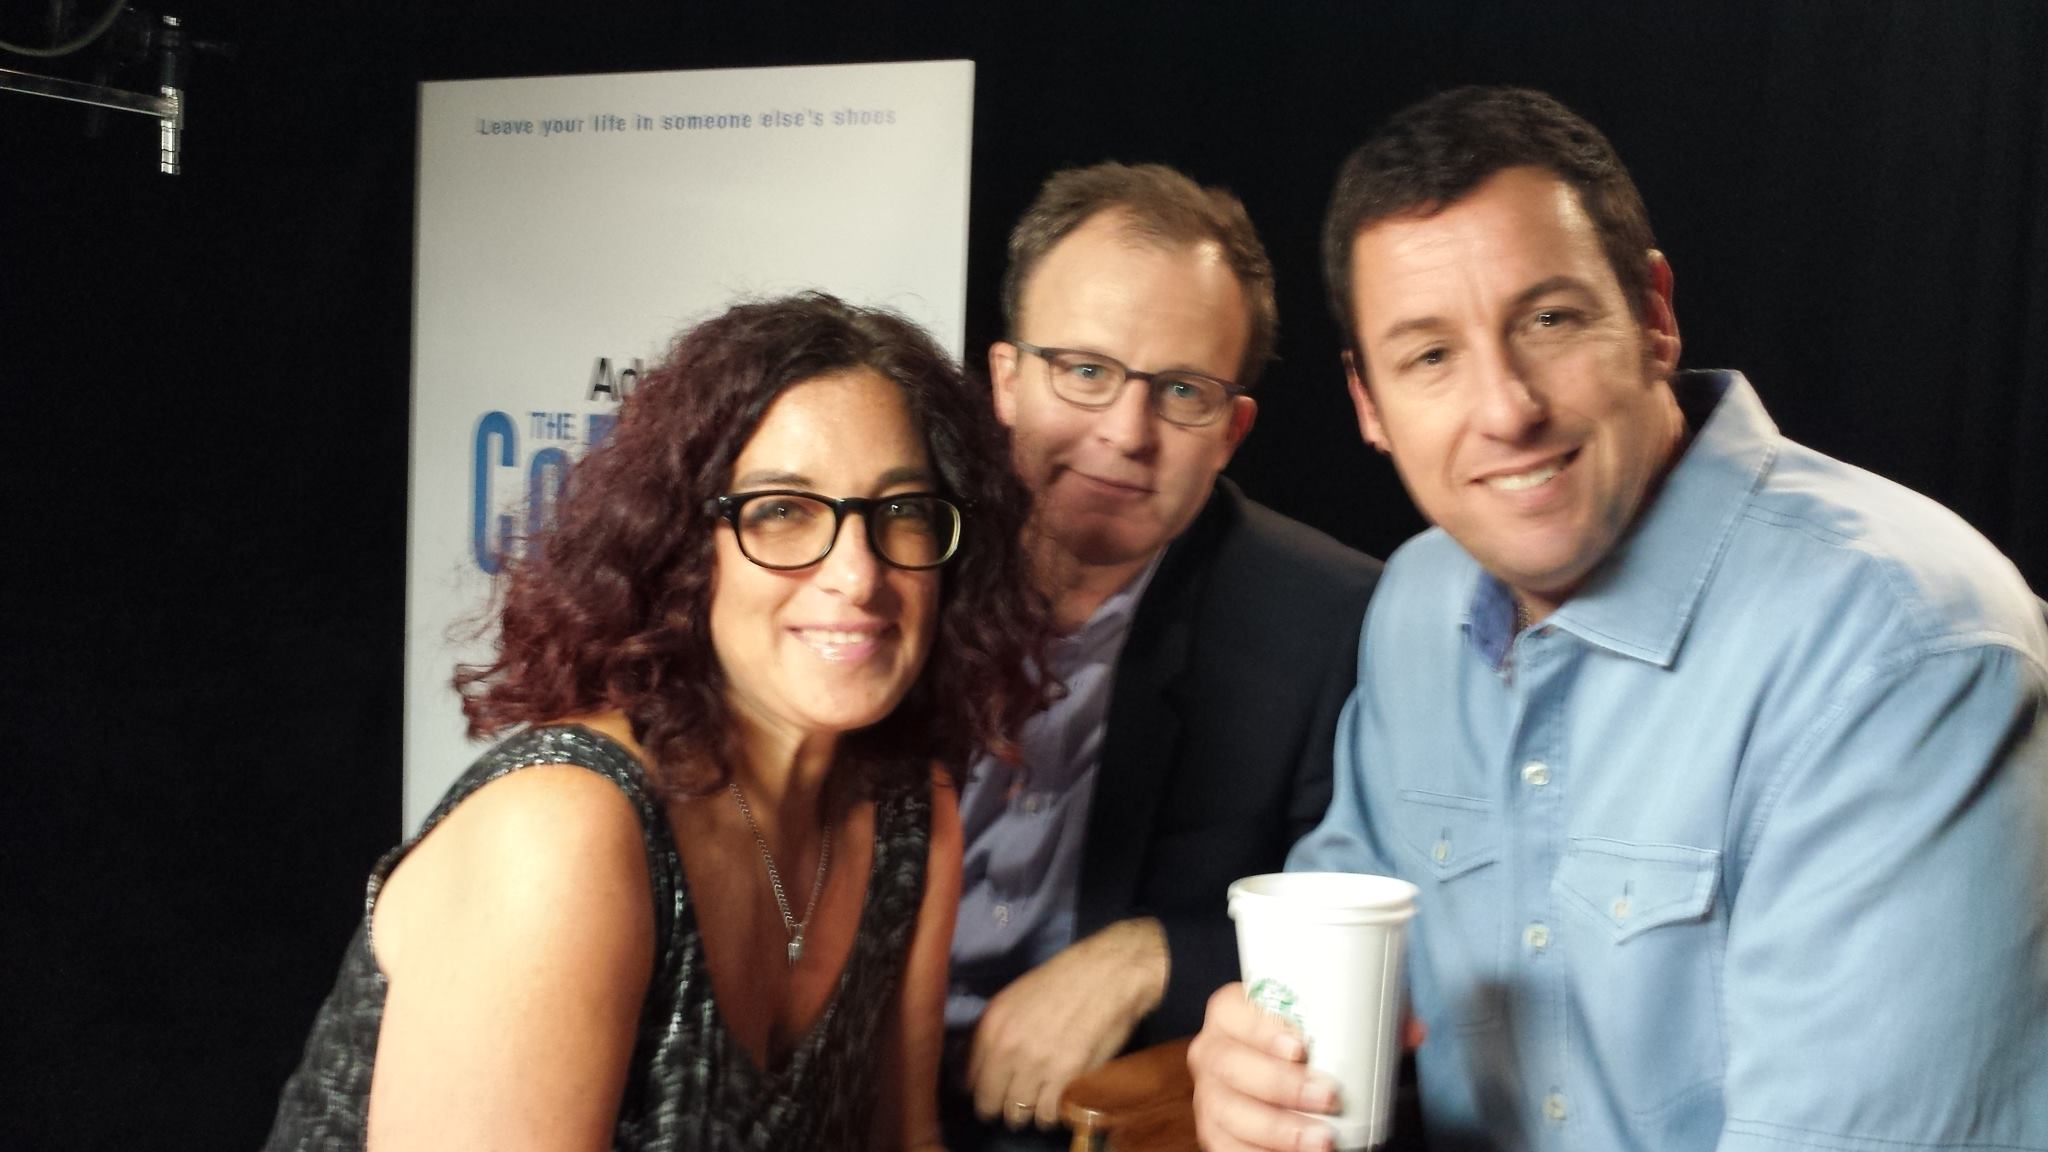 Tom McCarthy and Adam Sandler - The Cobbler